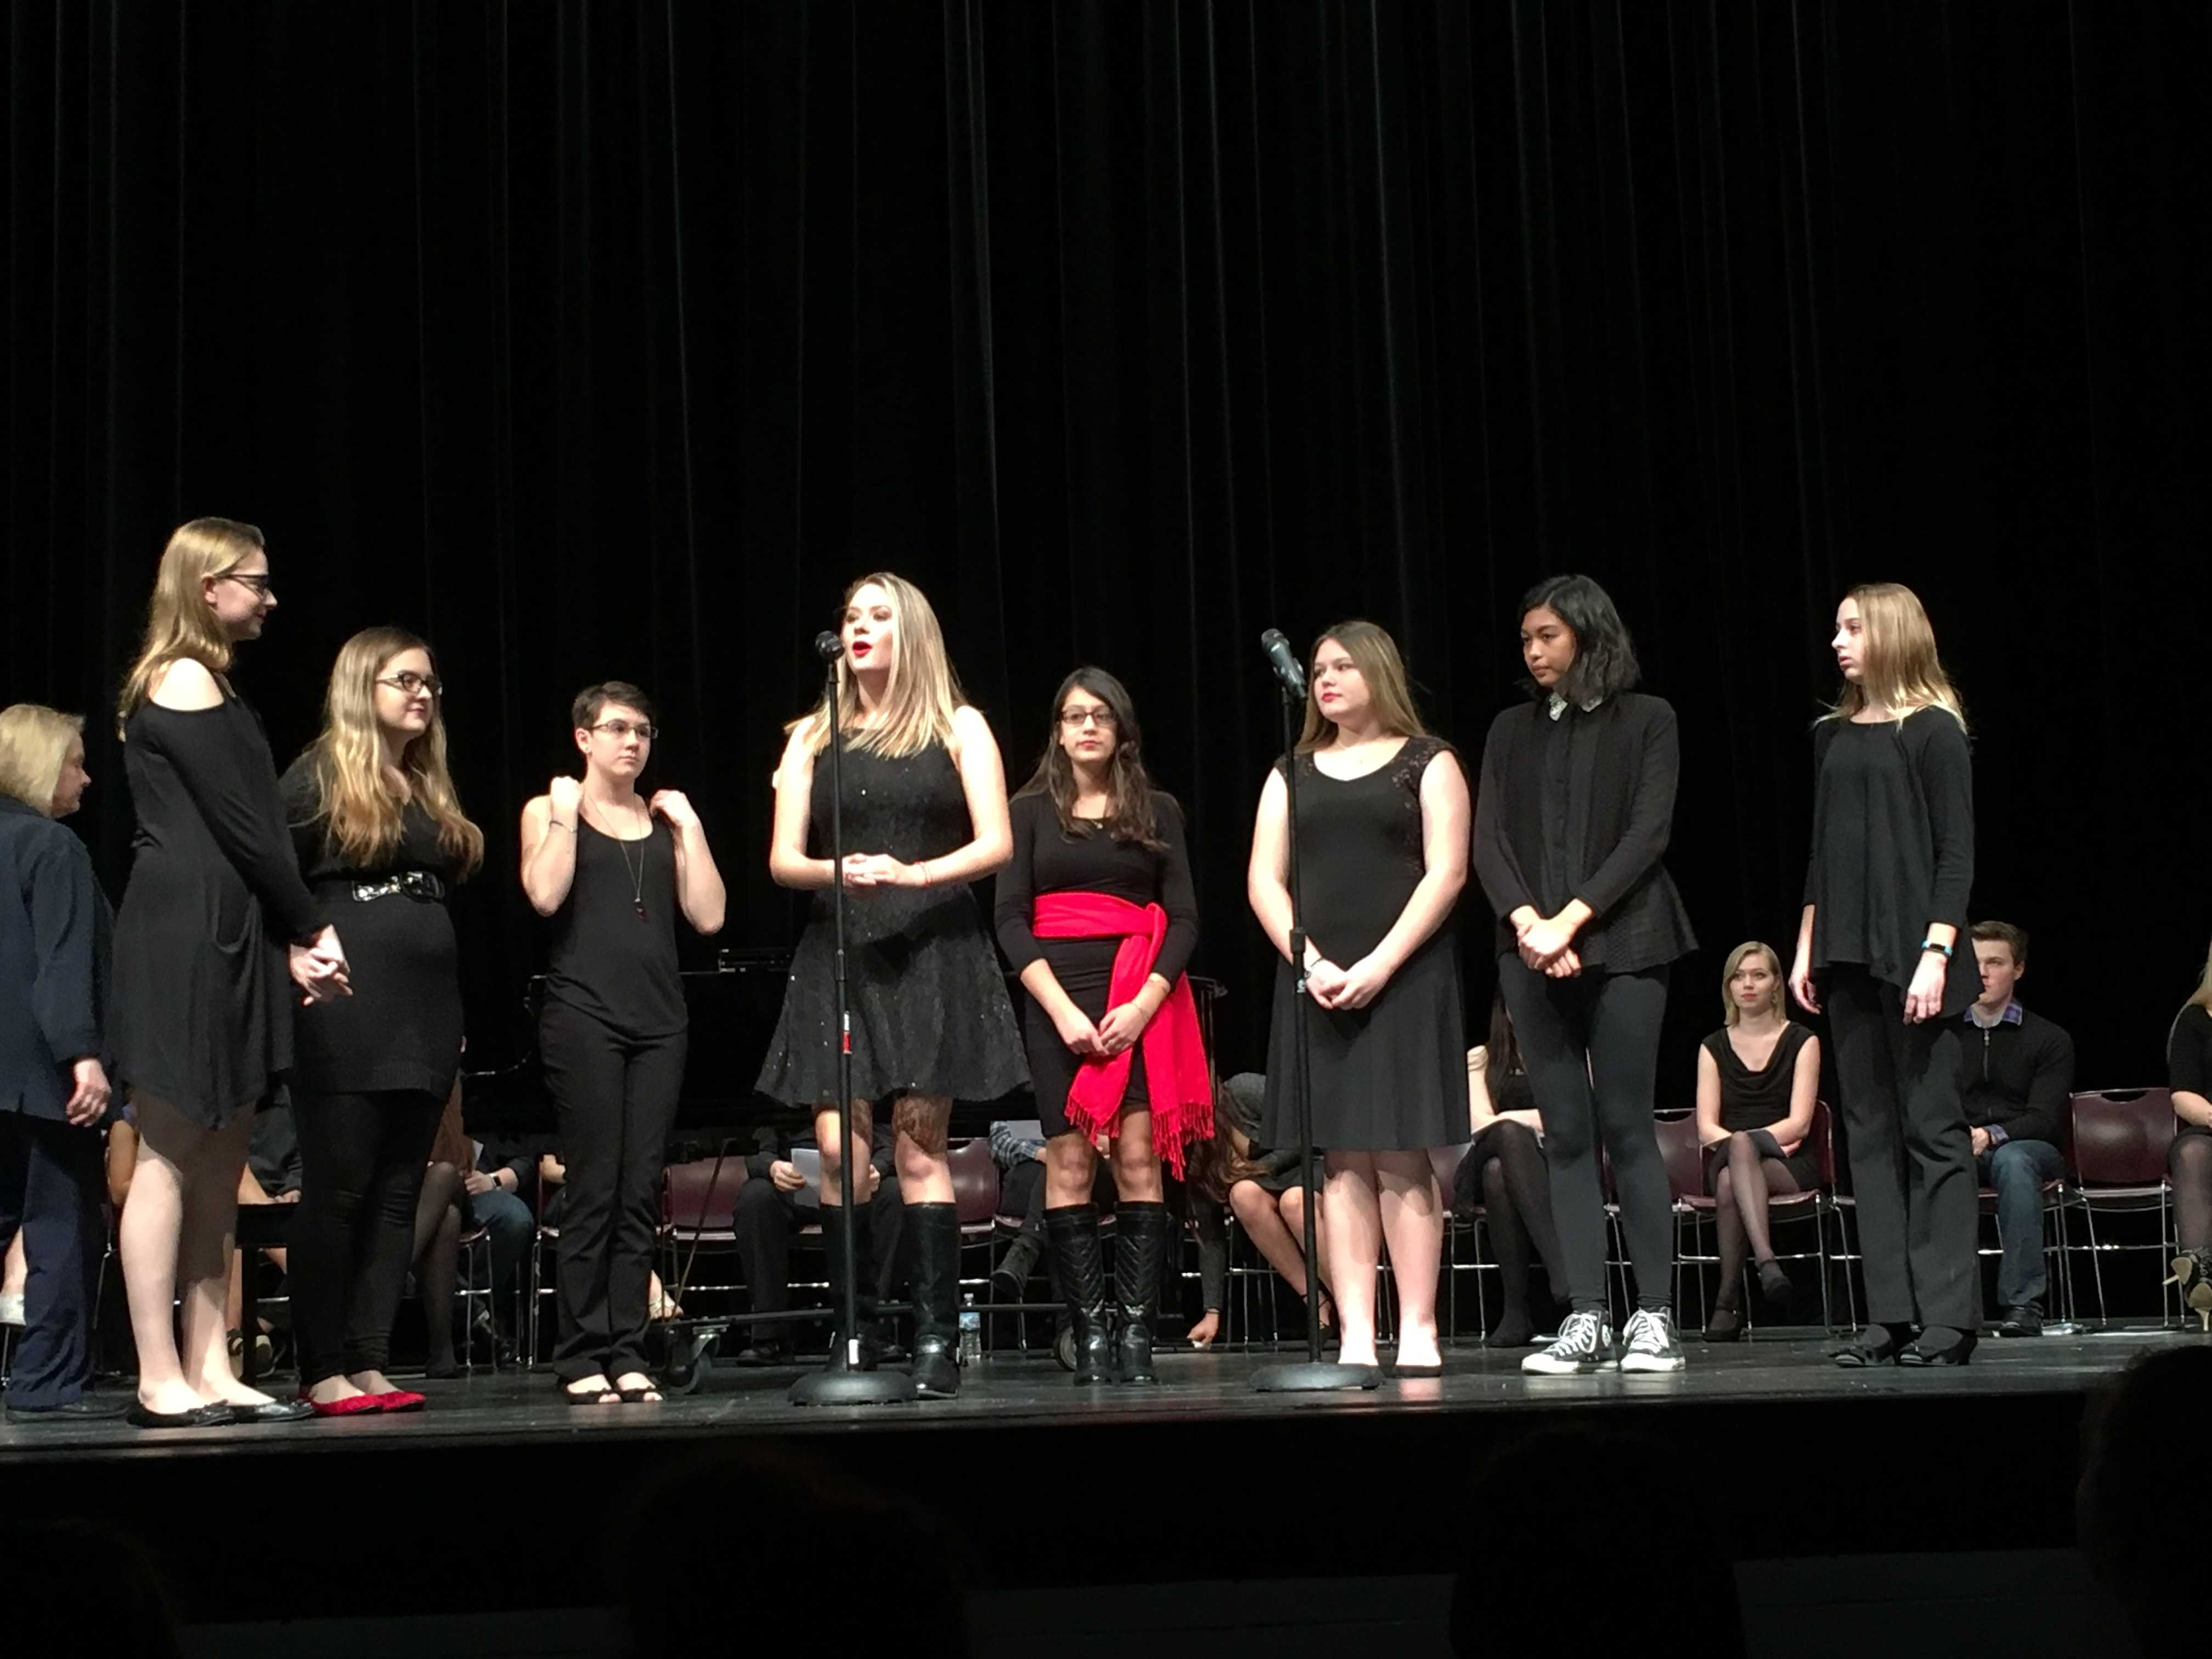 Members of Vocal Fusion perform as an ensemble (F. Losbanes).